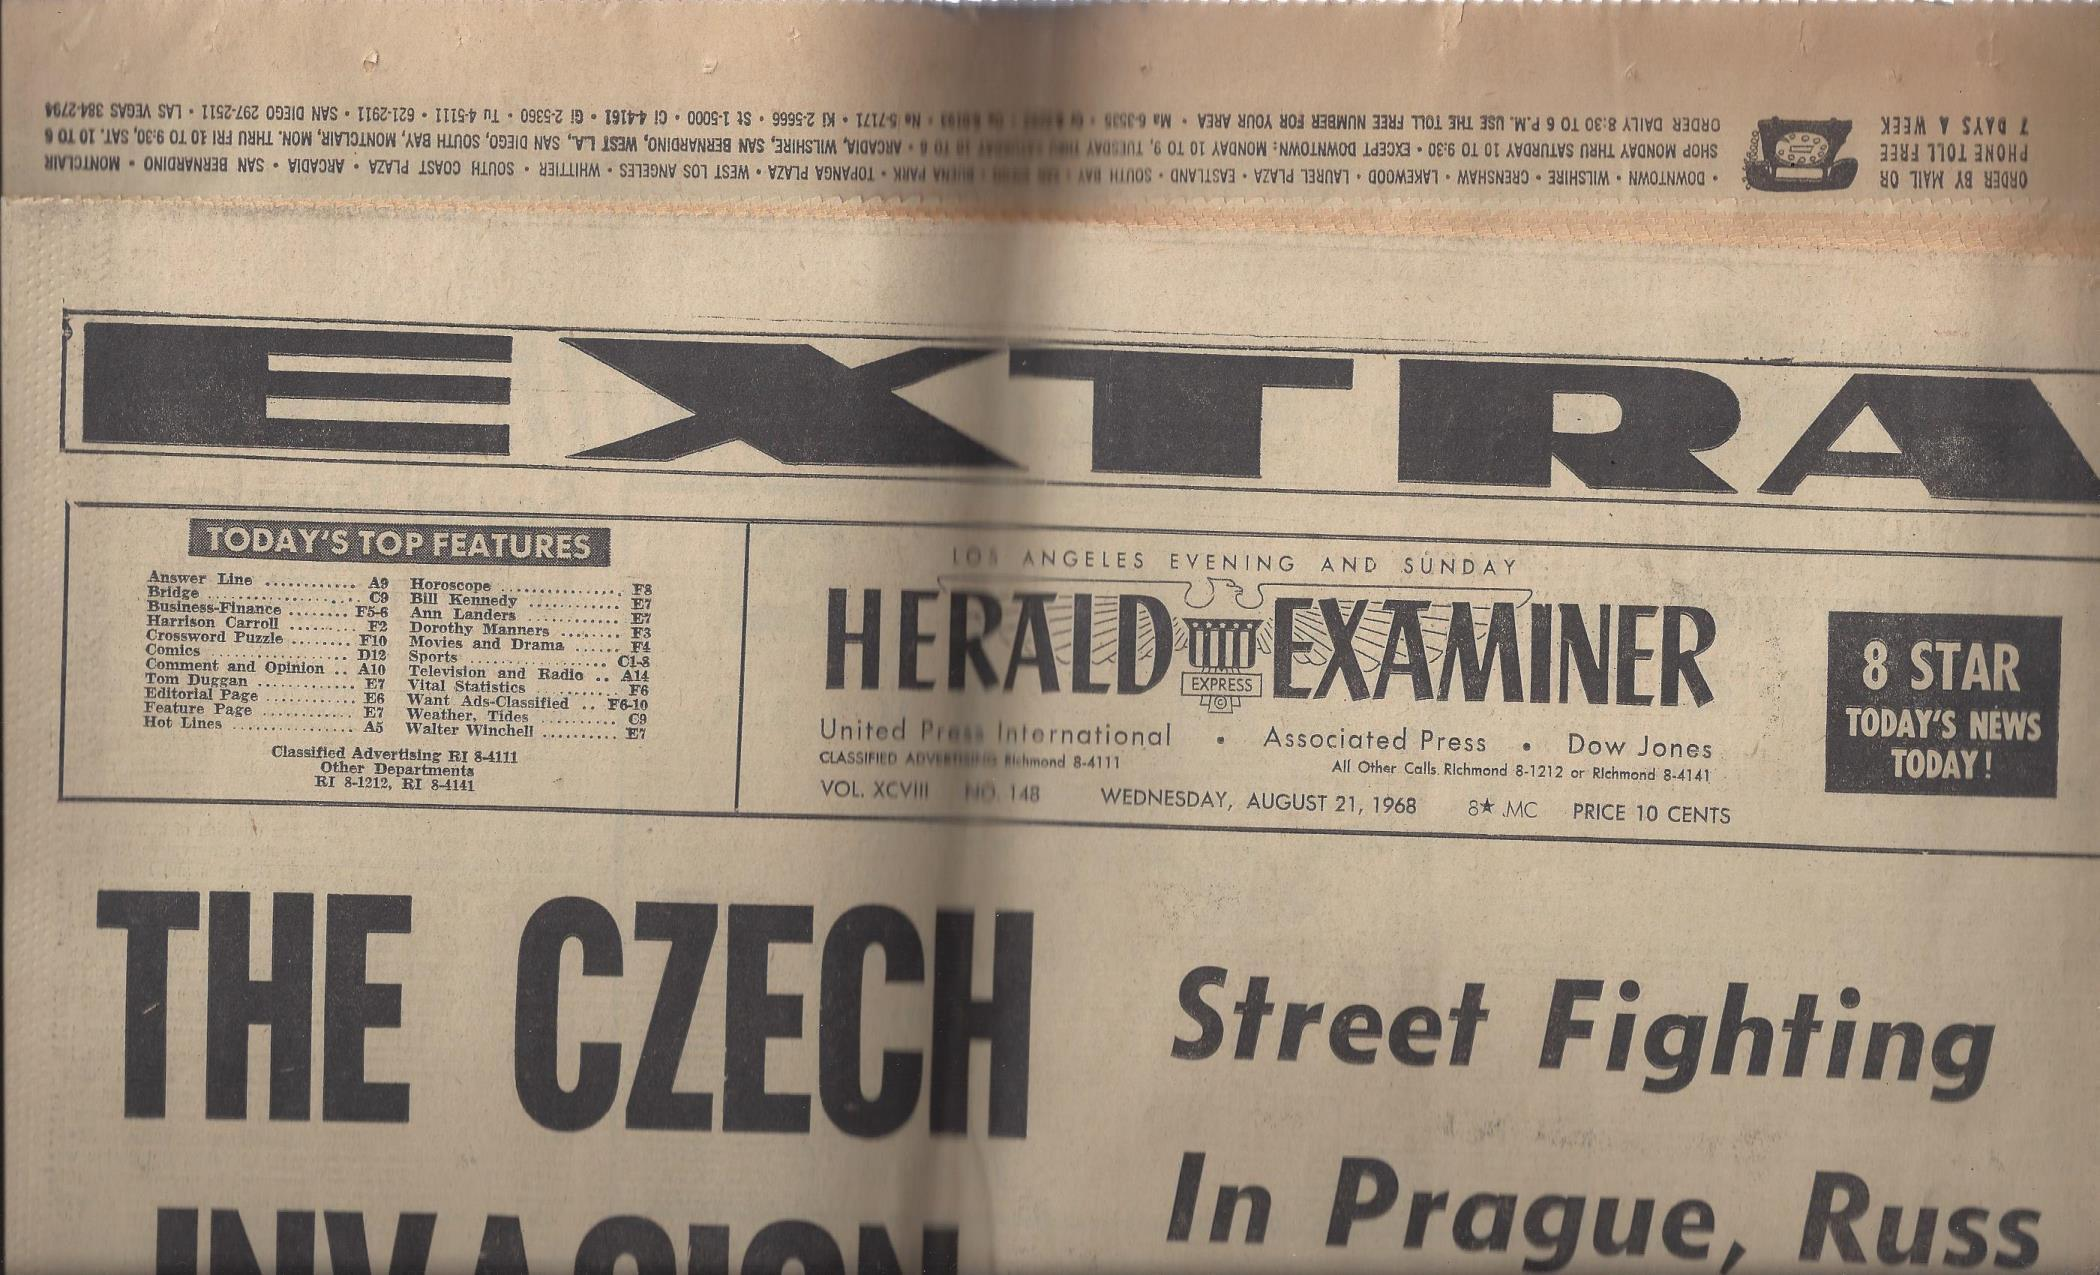 "Los Angeles Evening and Sunday Herald Examiner: ""The Czech Invasion"" (Wednesday, August 21, 1968), Herald Examiner"